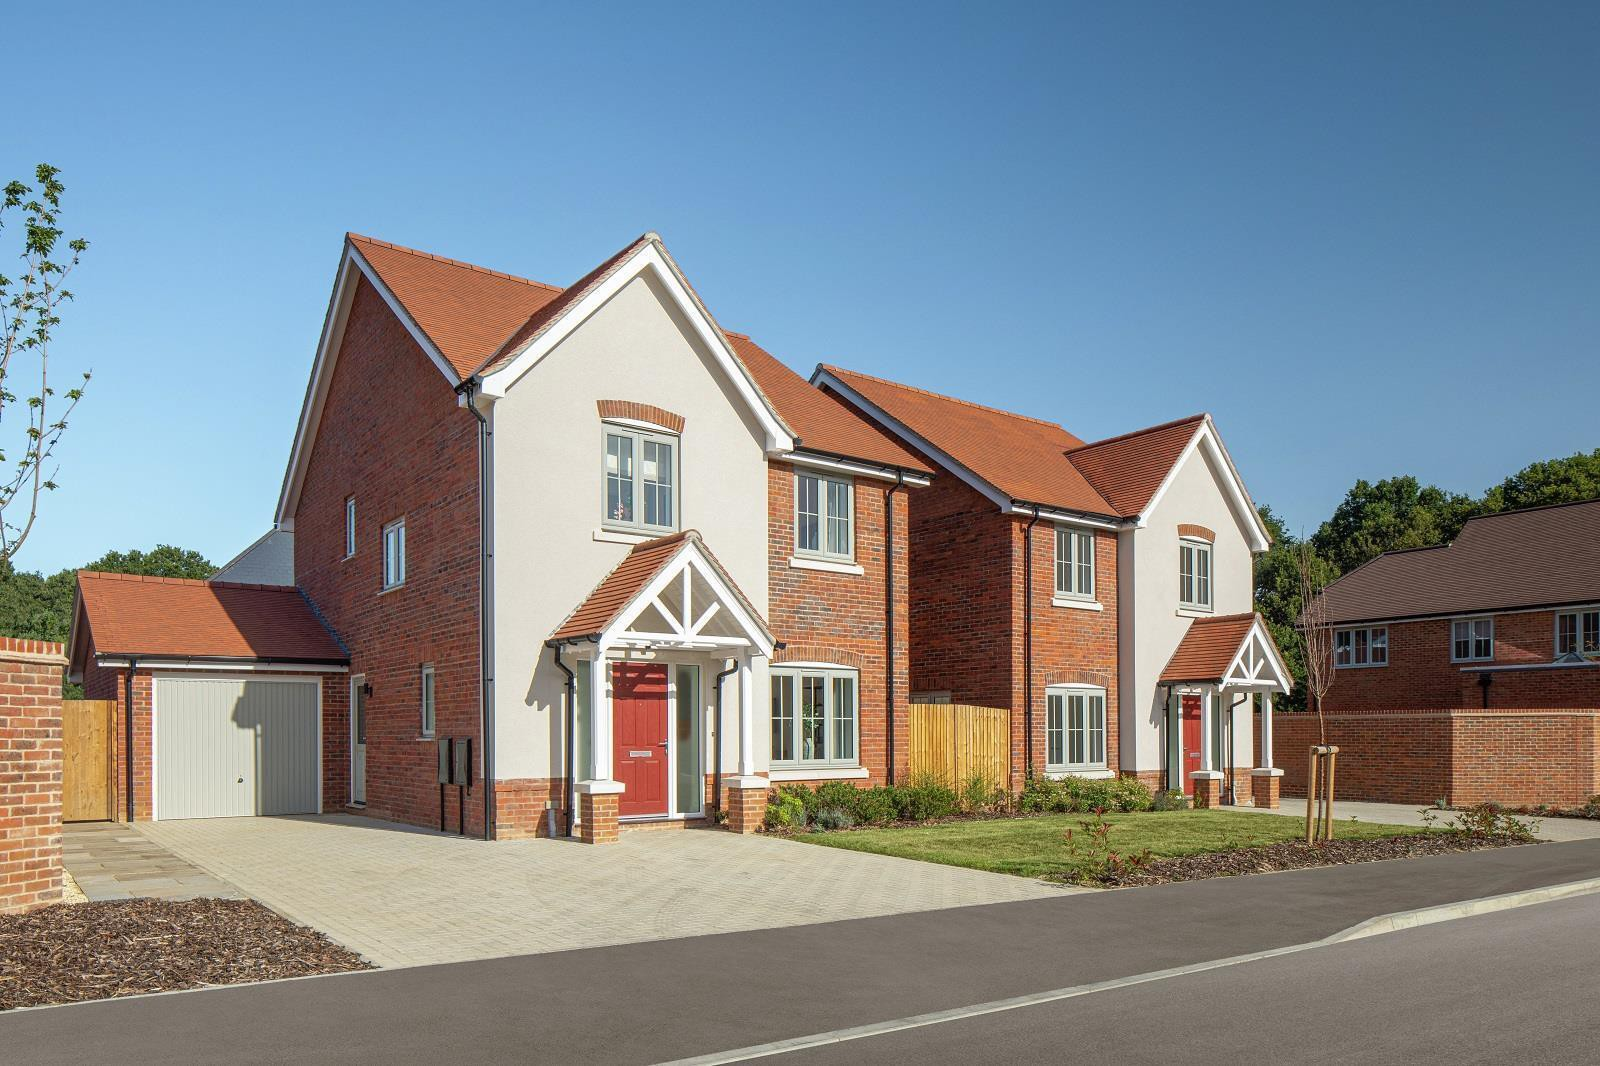 Dukes Meadow - The Larfield, 4 bed detached, Odiham Road, Riseley, RG7 1GH